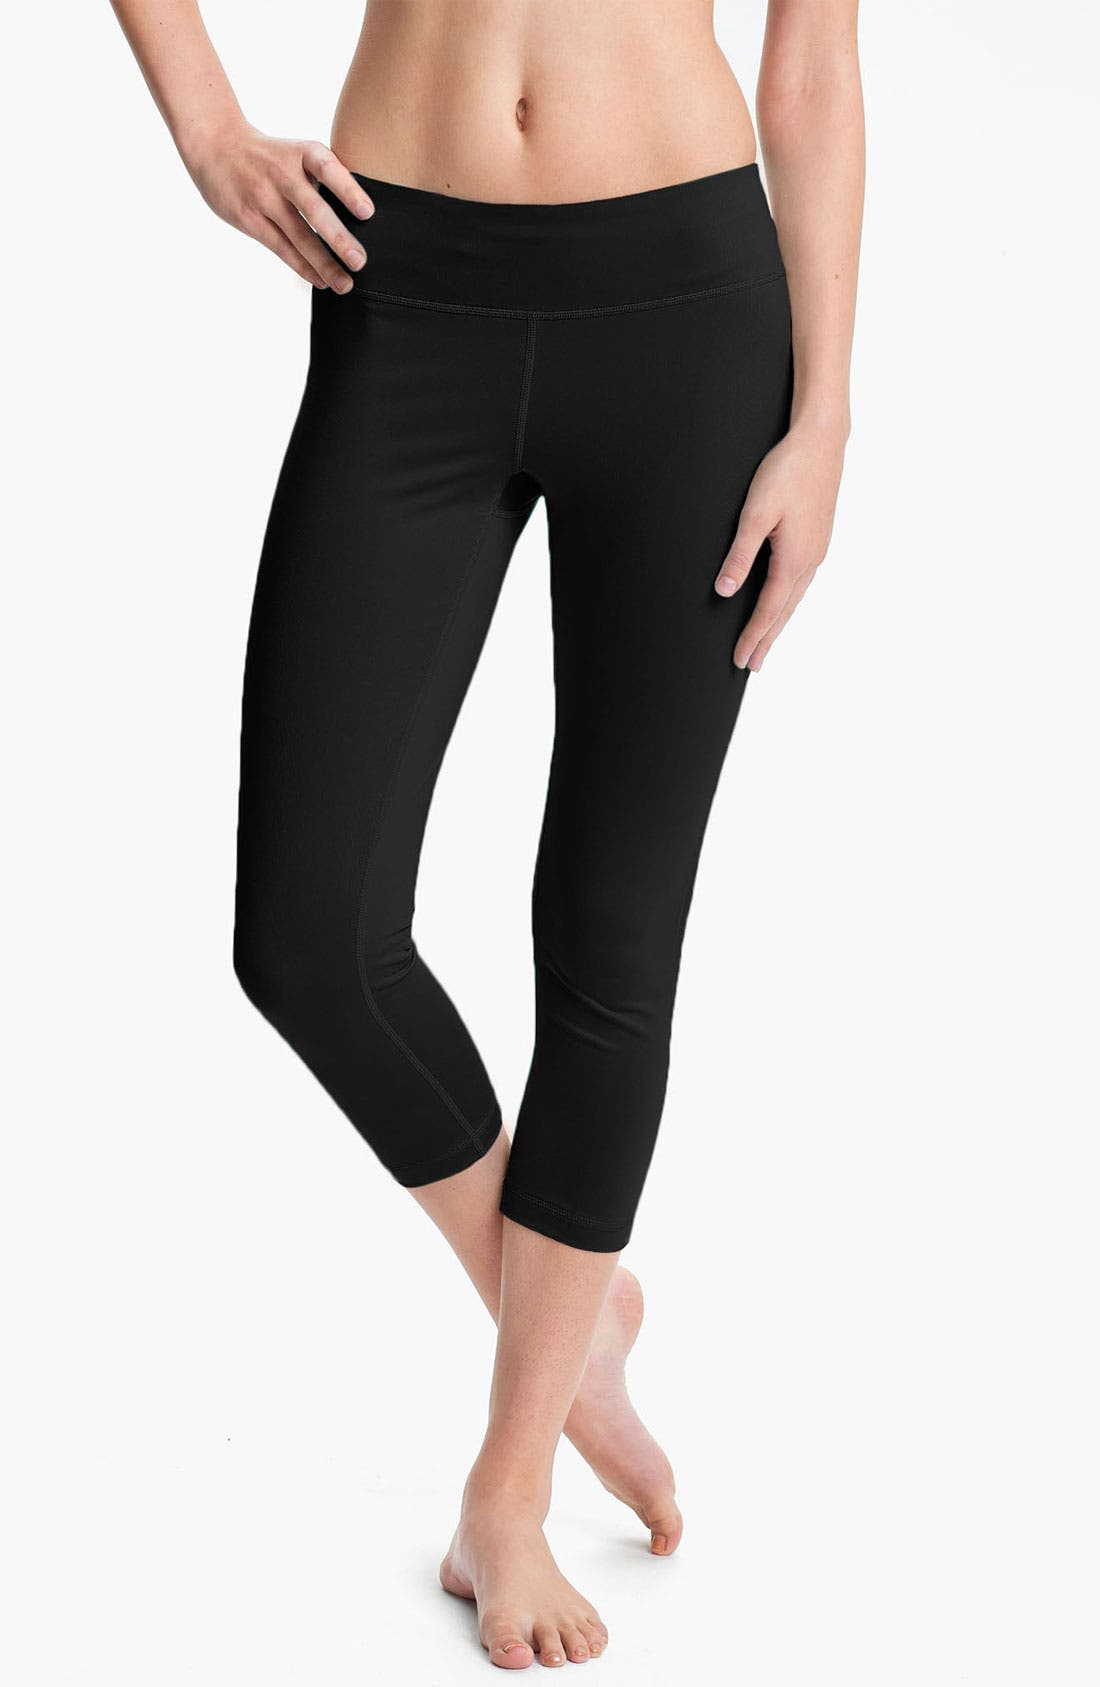 Main Image - Zella 'Live In - Streamline' Mesh Inset Capri Leggings